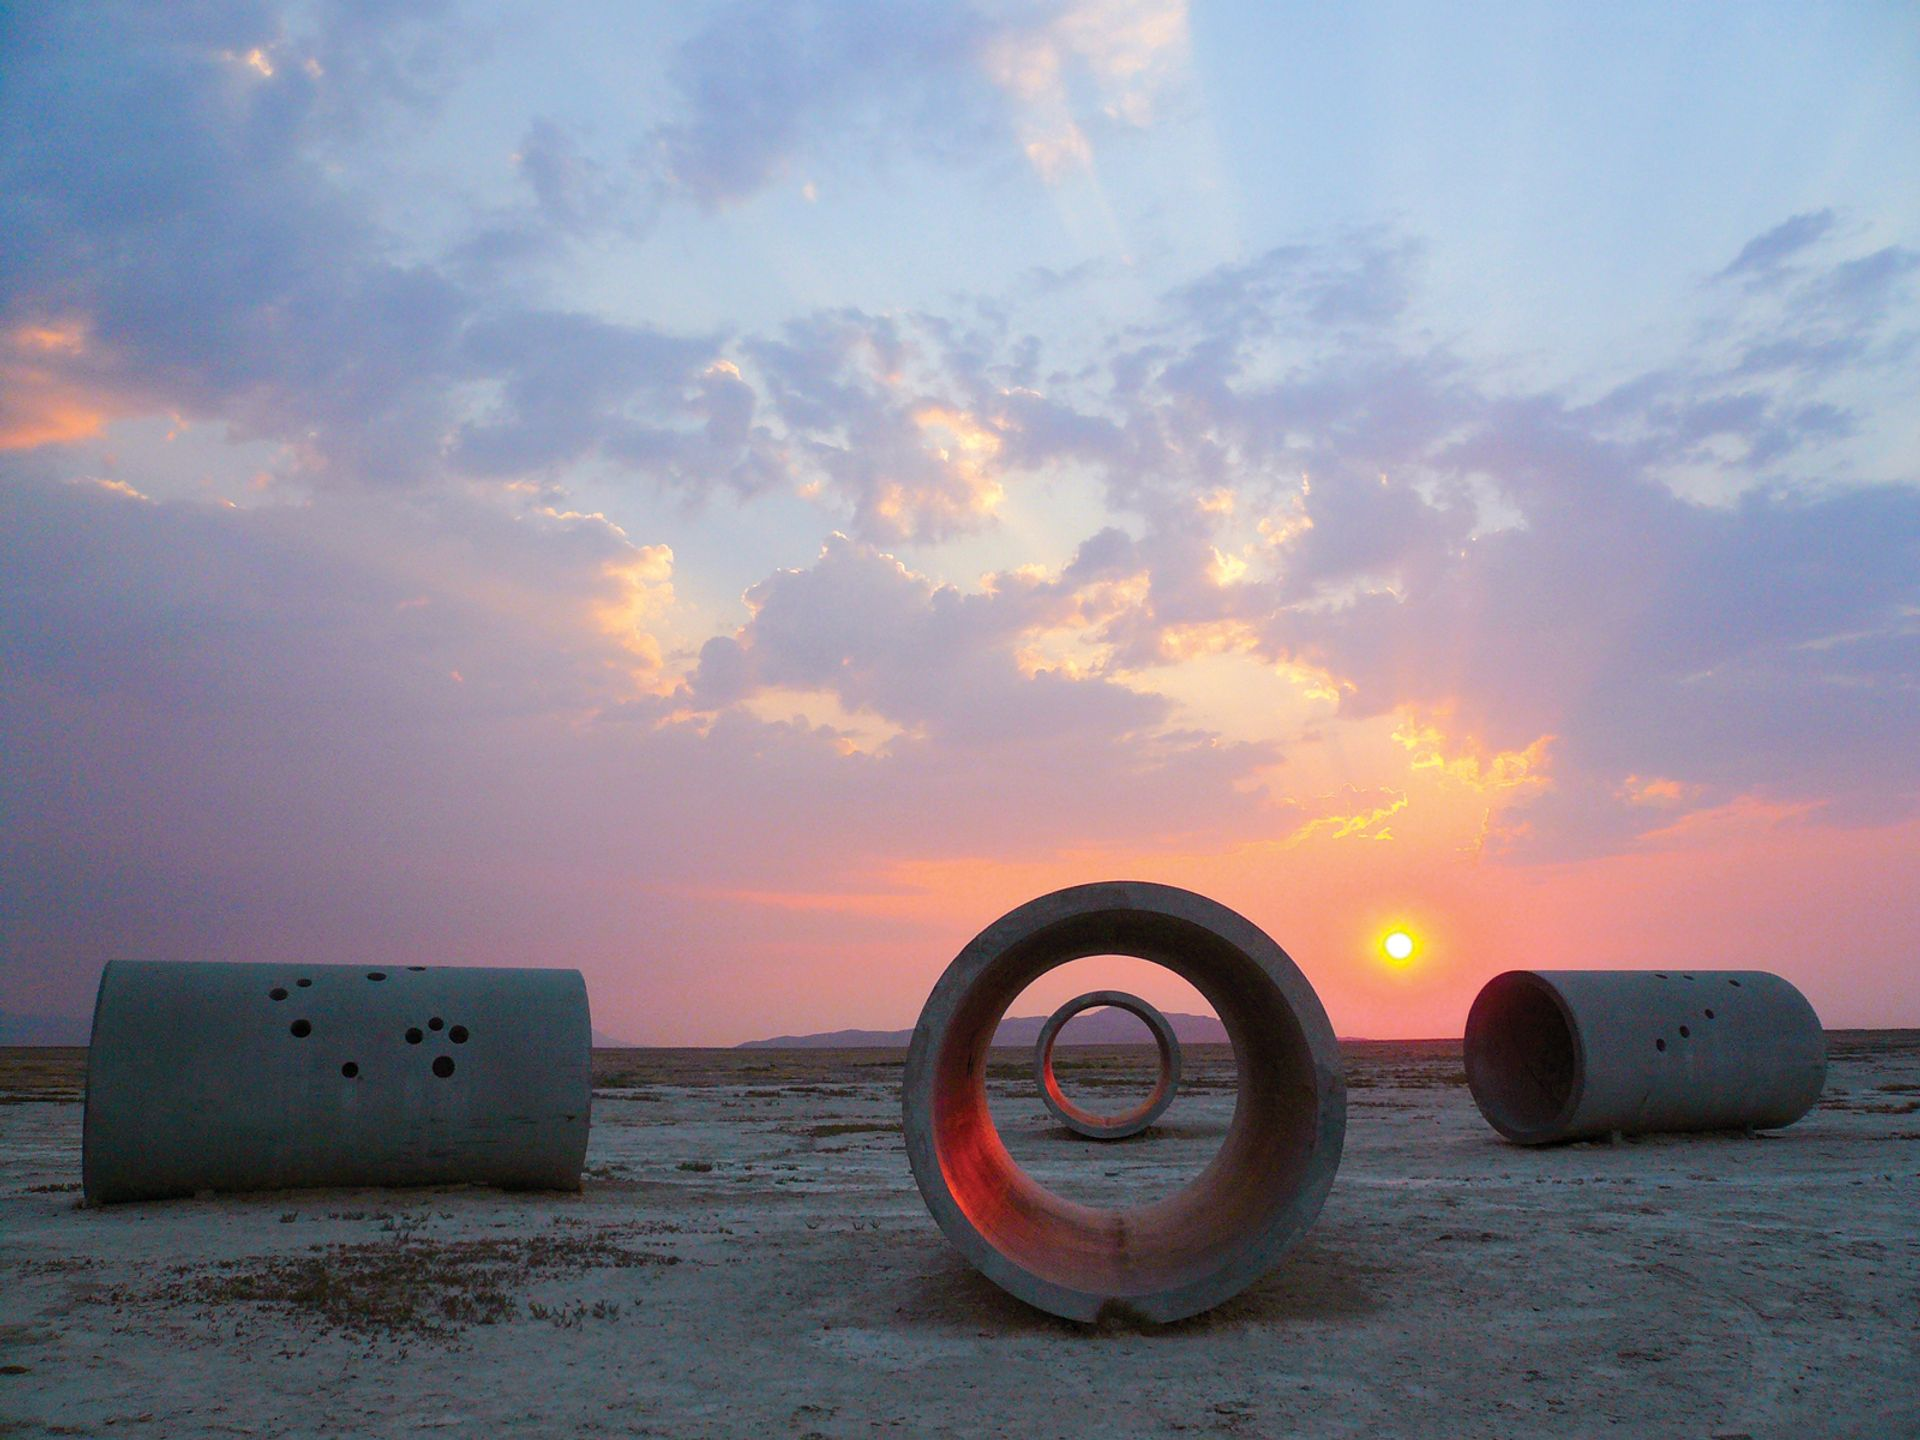 The genesis of Nancy Holt's famous Sun Tunnels (1973–76) in the Utah desert can be seen in the Dia show © Holt-Smithson Foundation and Dia Art Foundation; Licensed by VAGA; Photos: ZCZ Films/James Fox and Nancy Holt